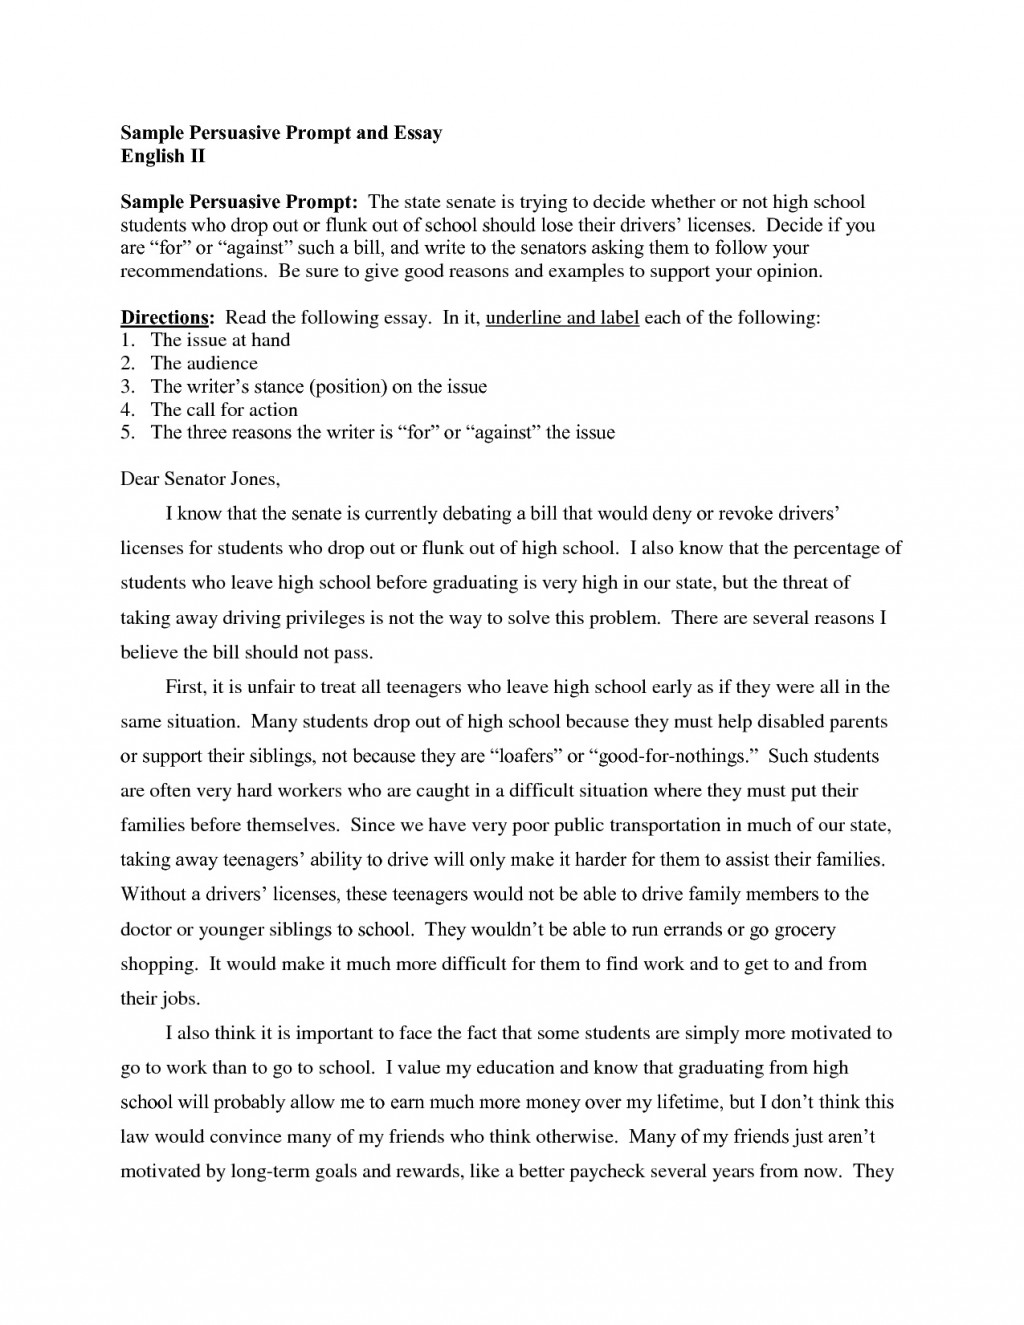 021 Research Paper Samples Of Persuasive Essays For High School Students Demire Argumentative Essay Impressive Topics Senior Qualitative Sample In The Philippines Large